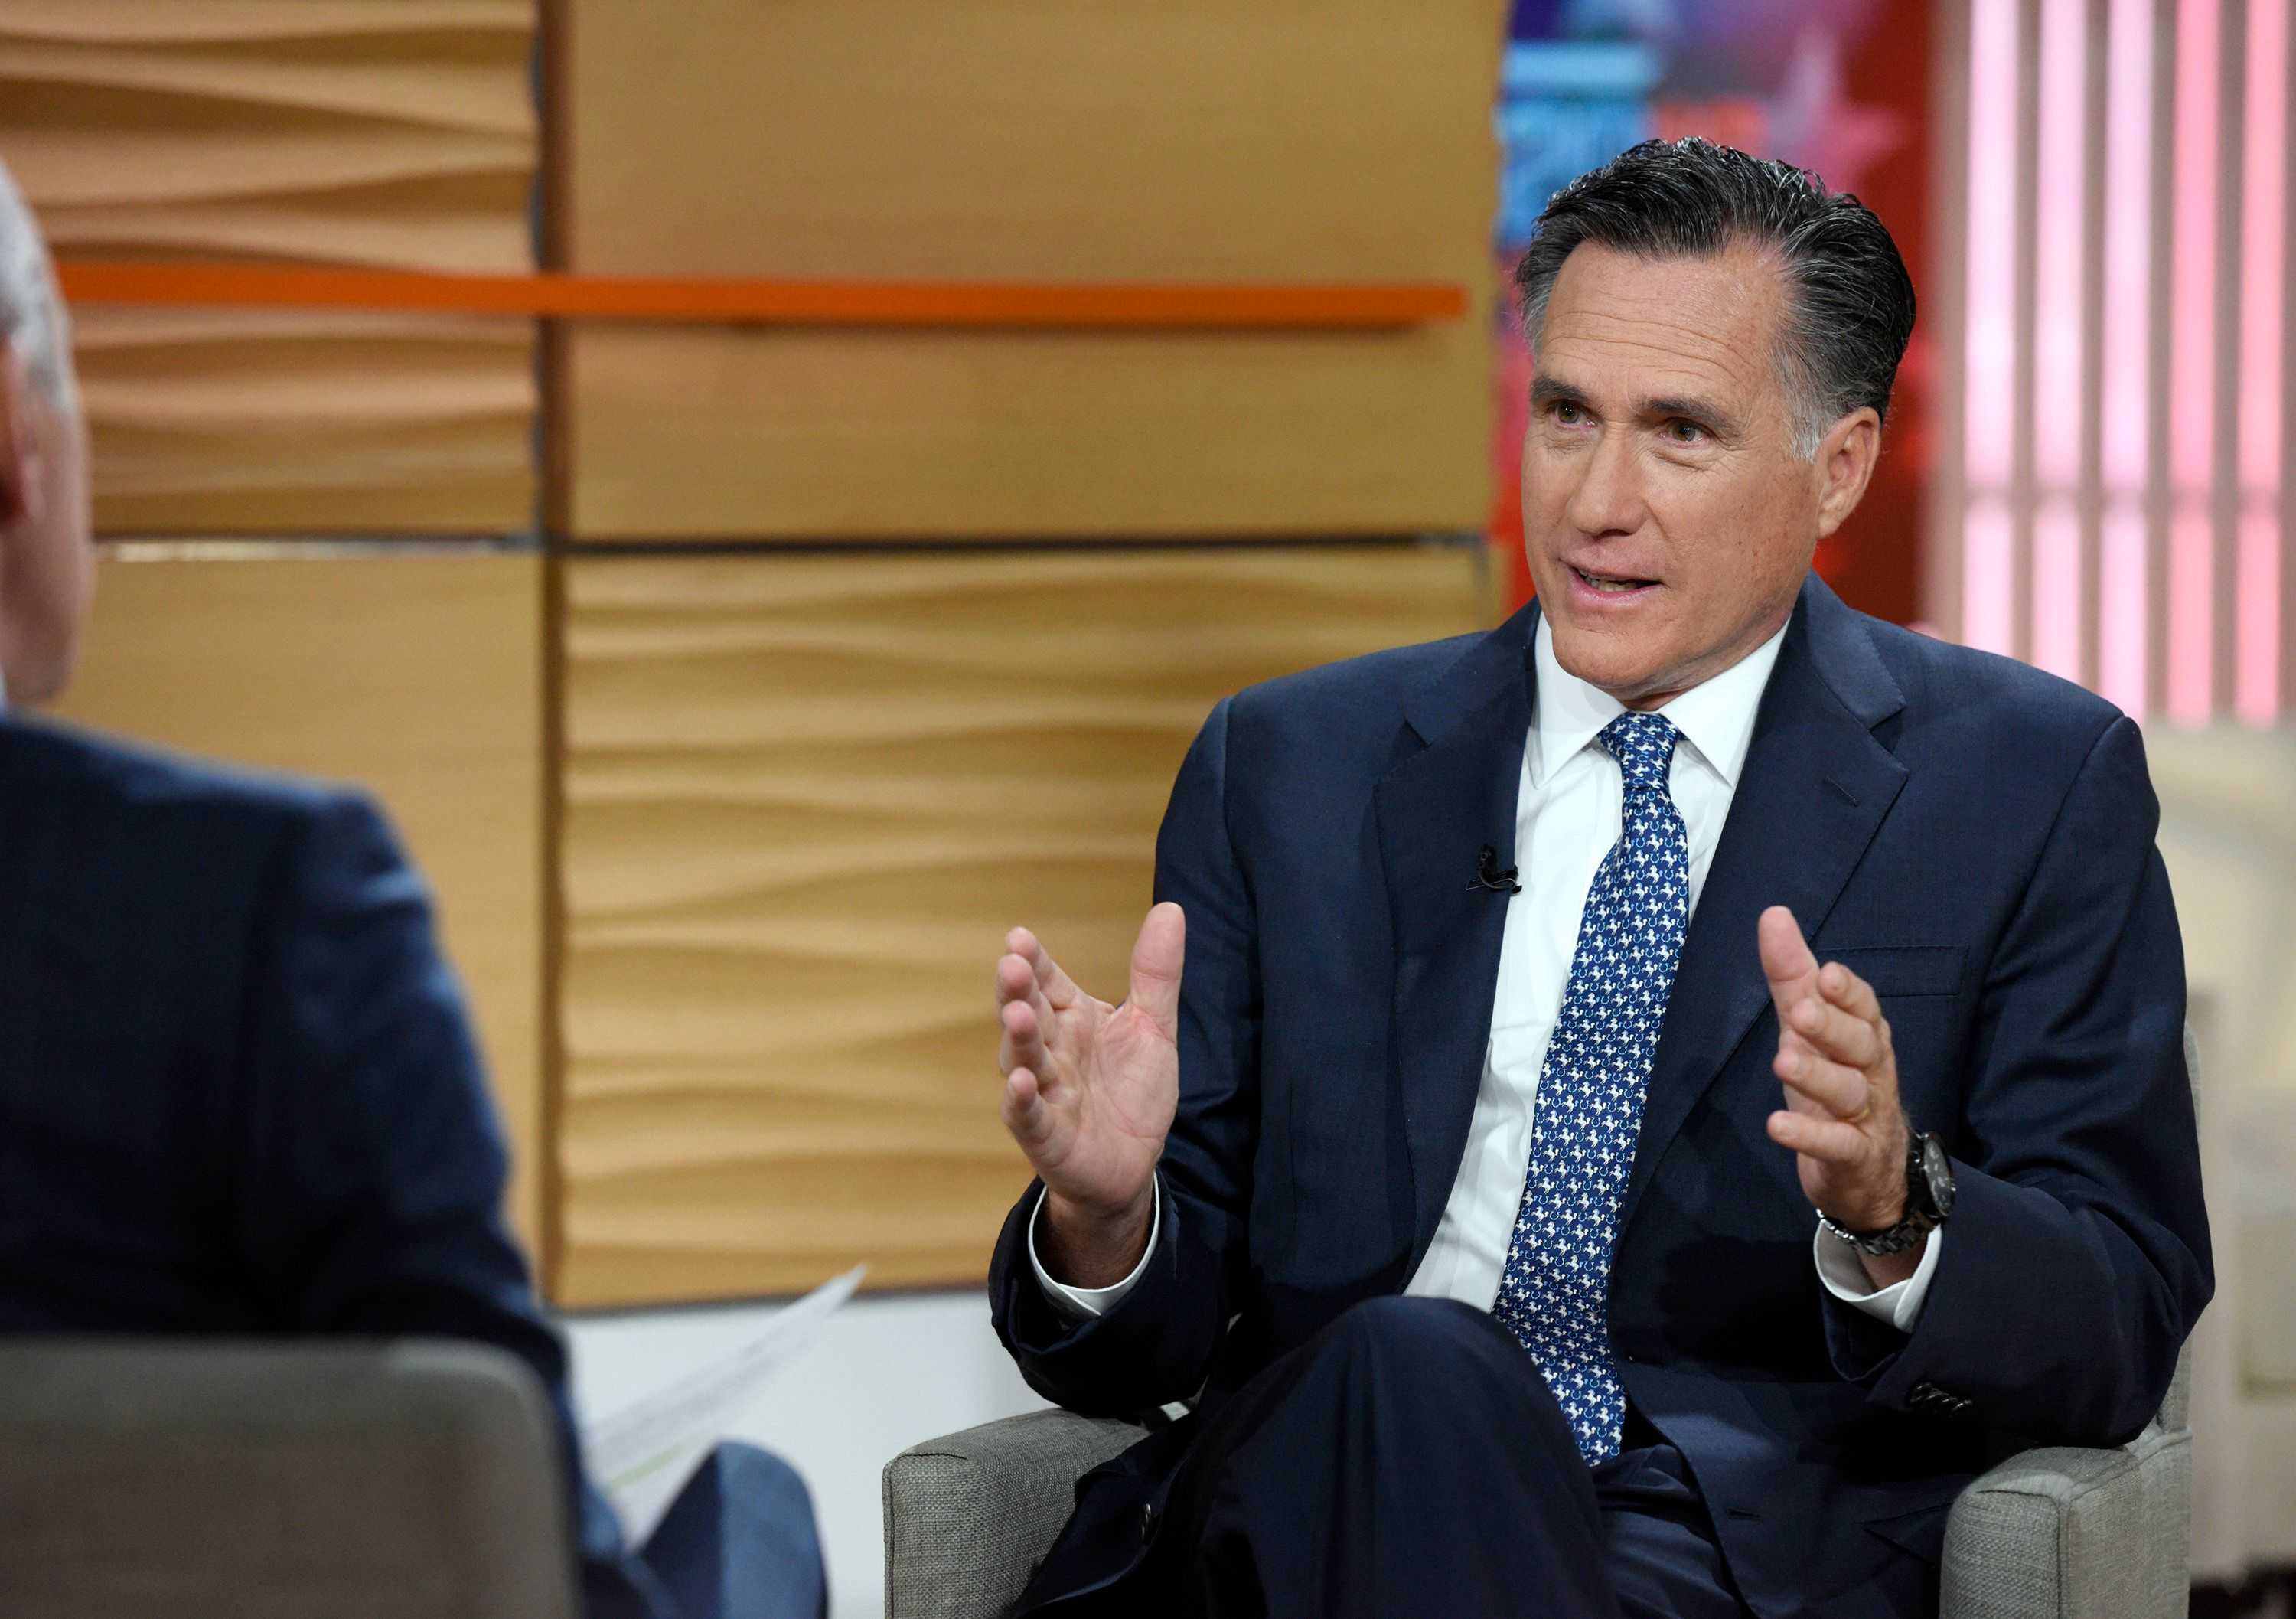 Mitt Romney doesn't want to be associated with Donald Trump's racist